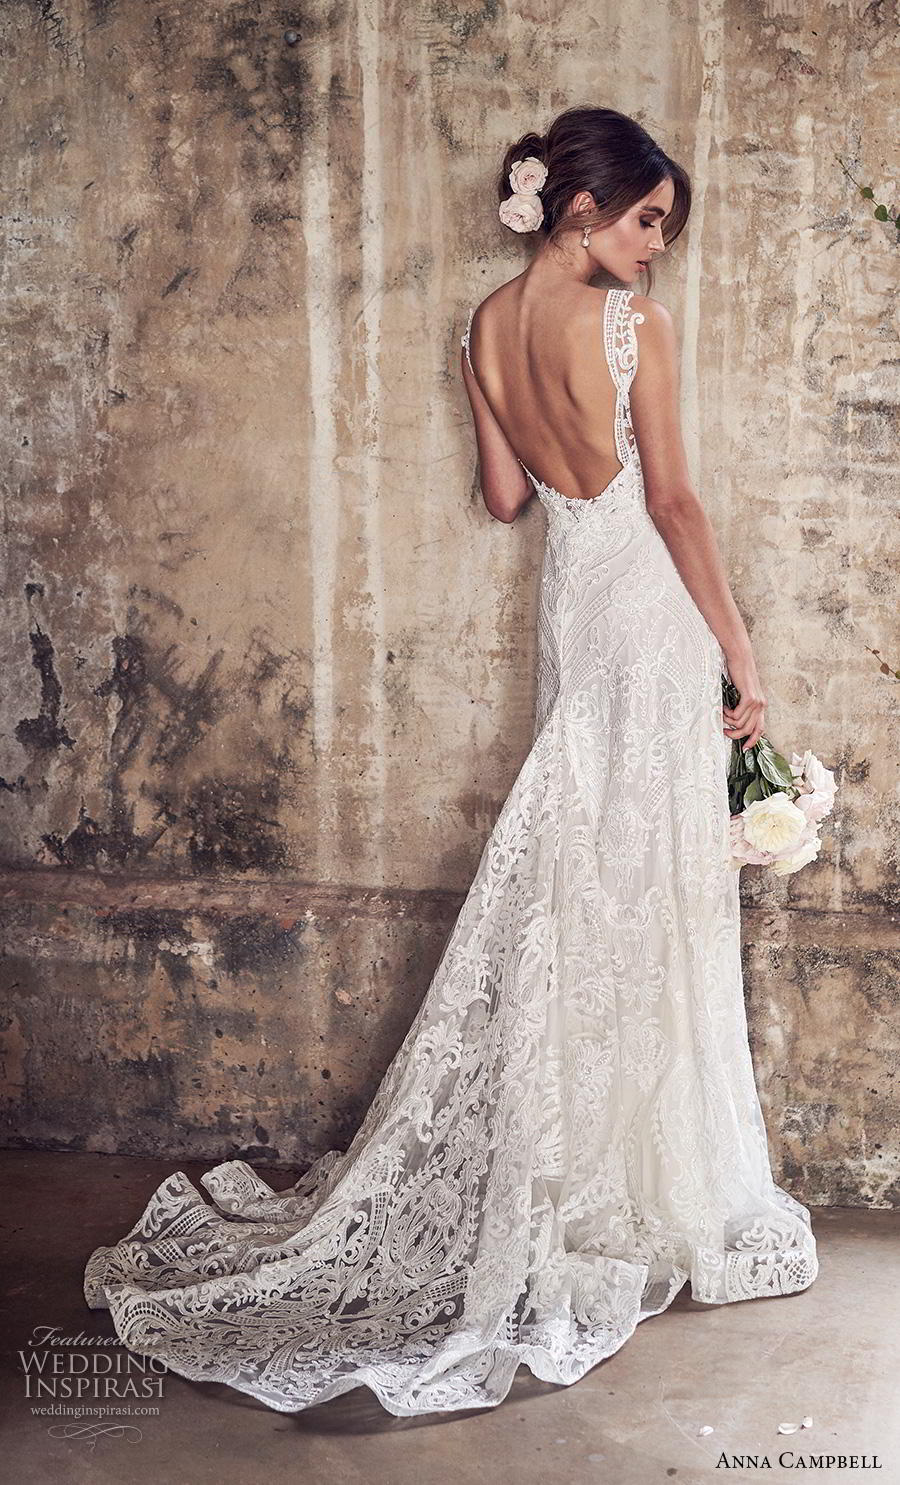 anna campbell 2019 bridal sleeveless v neck full embellishment elegant romantic a line wedding dress backless medium train (14) bv